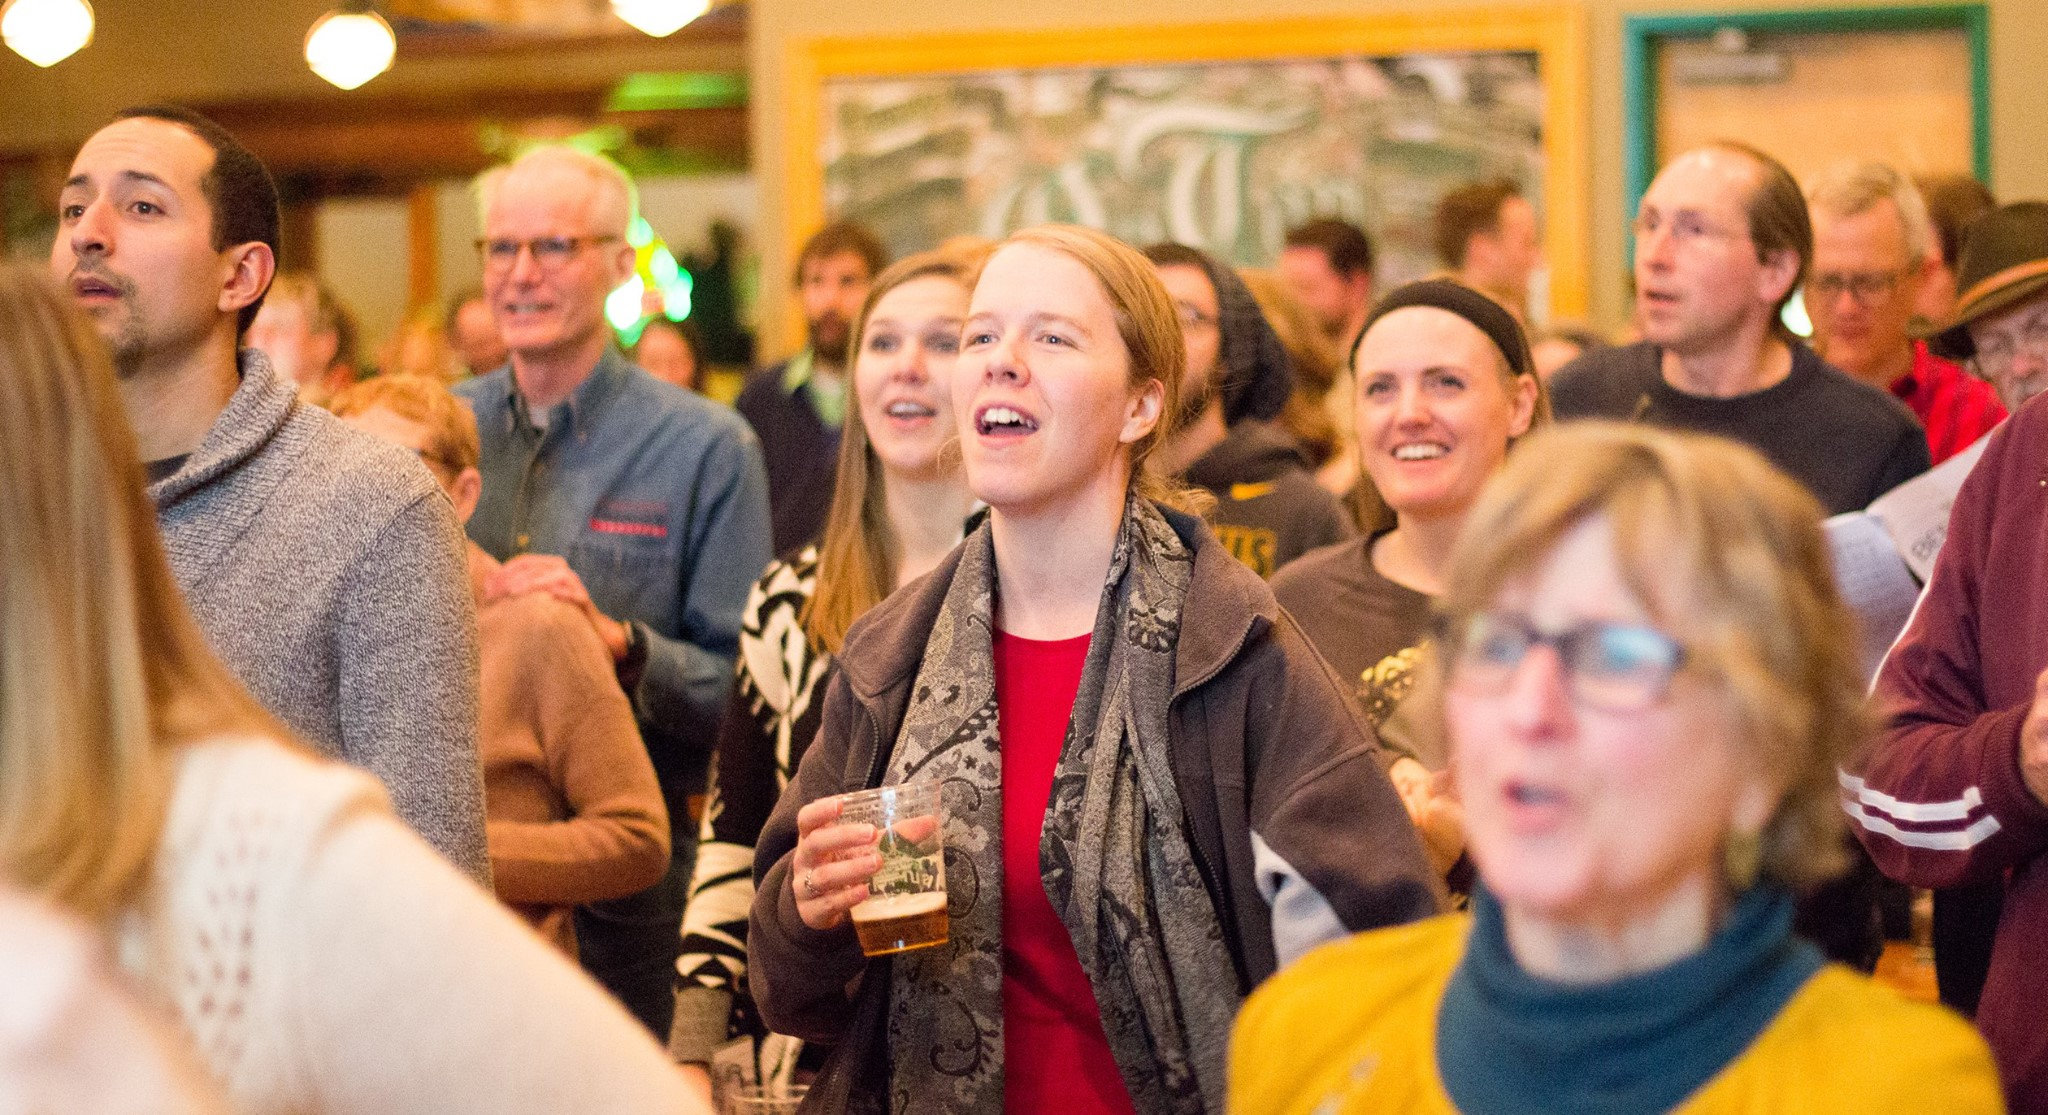 Upcoming Events - When and where is the next Beer Choir Twin Cities event?